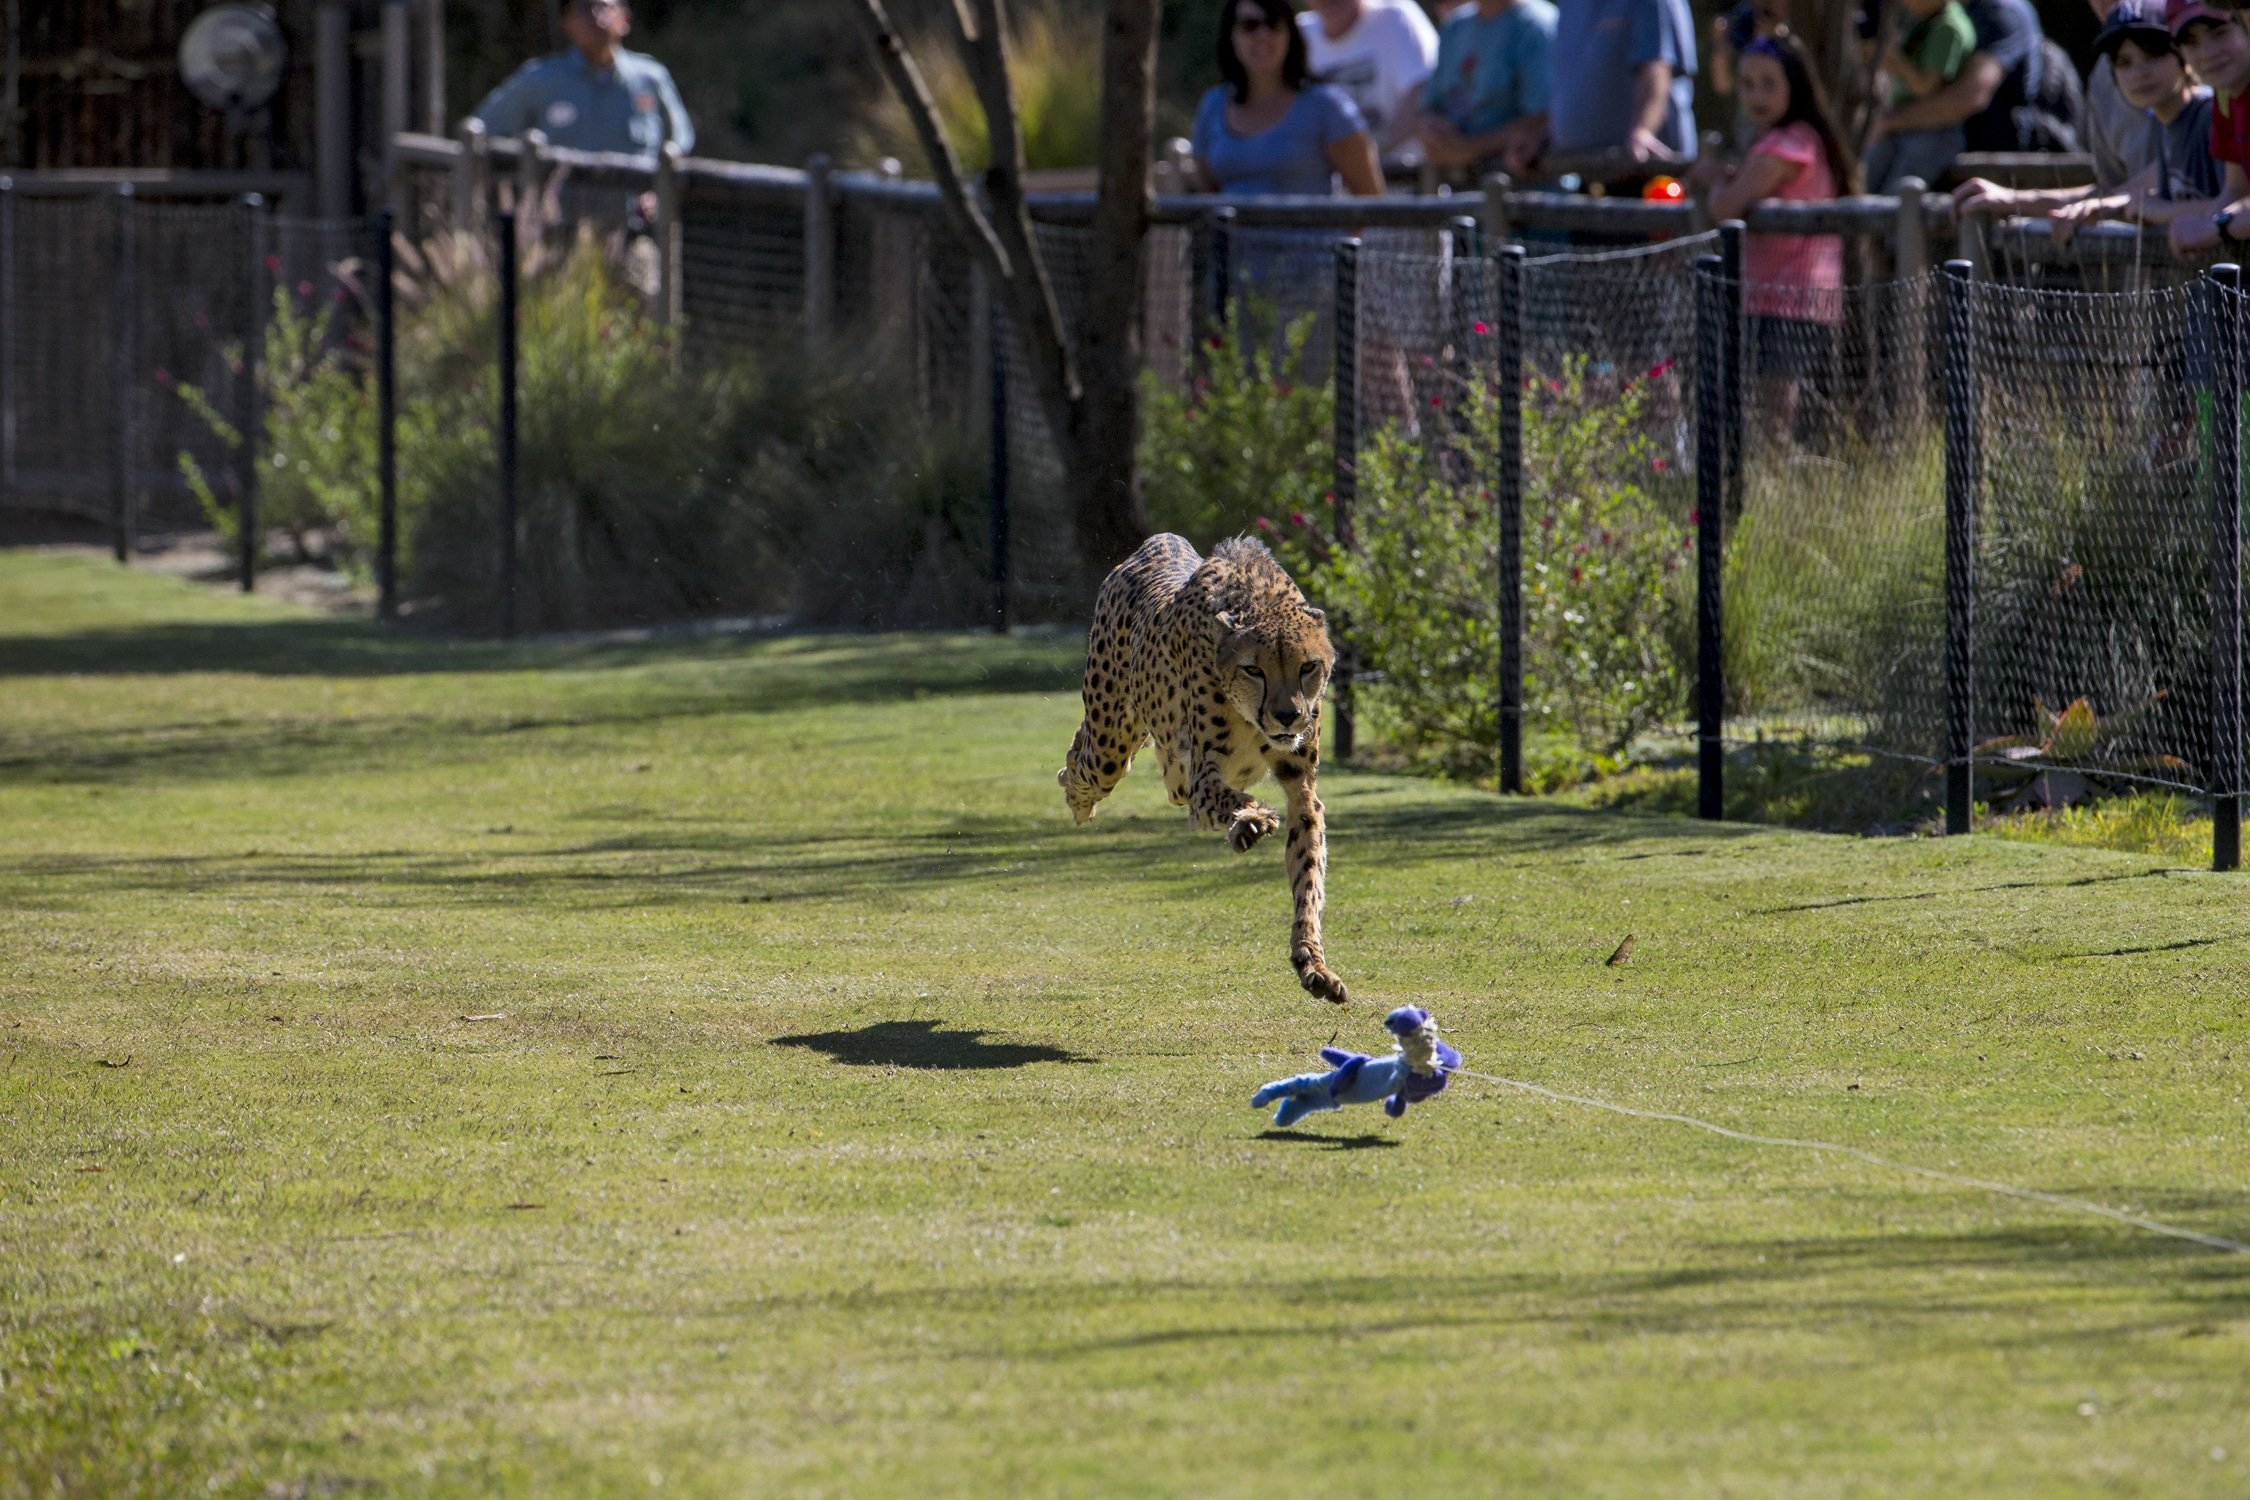 The Cheetah Run at San Diego Zoo Safari Park